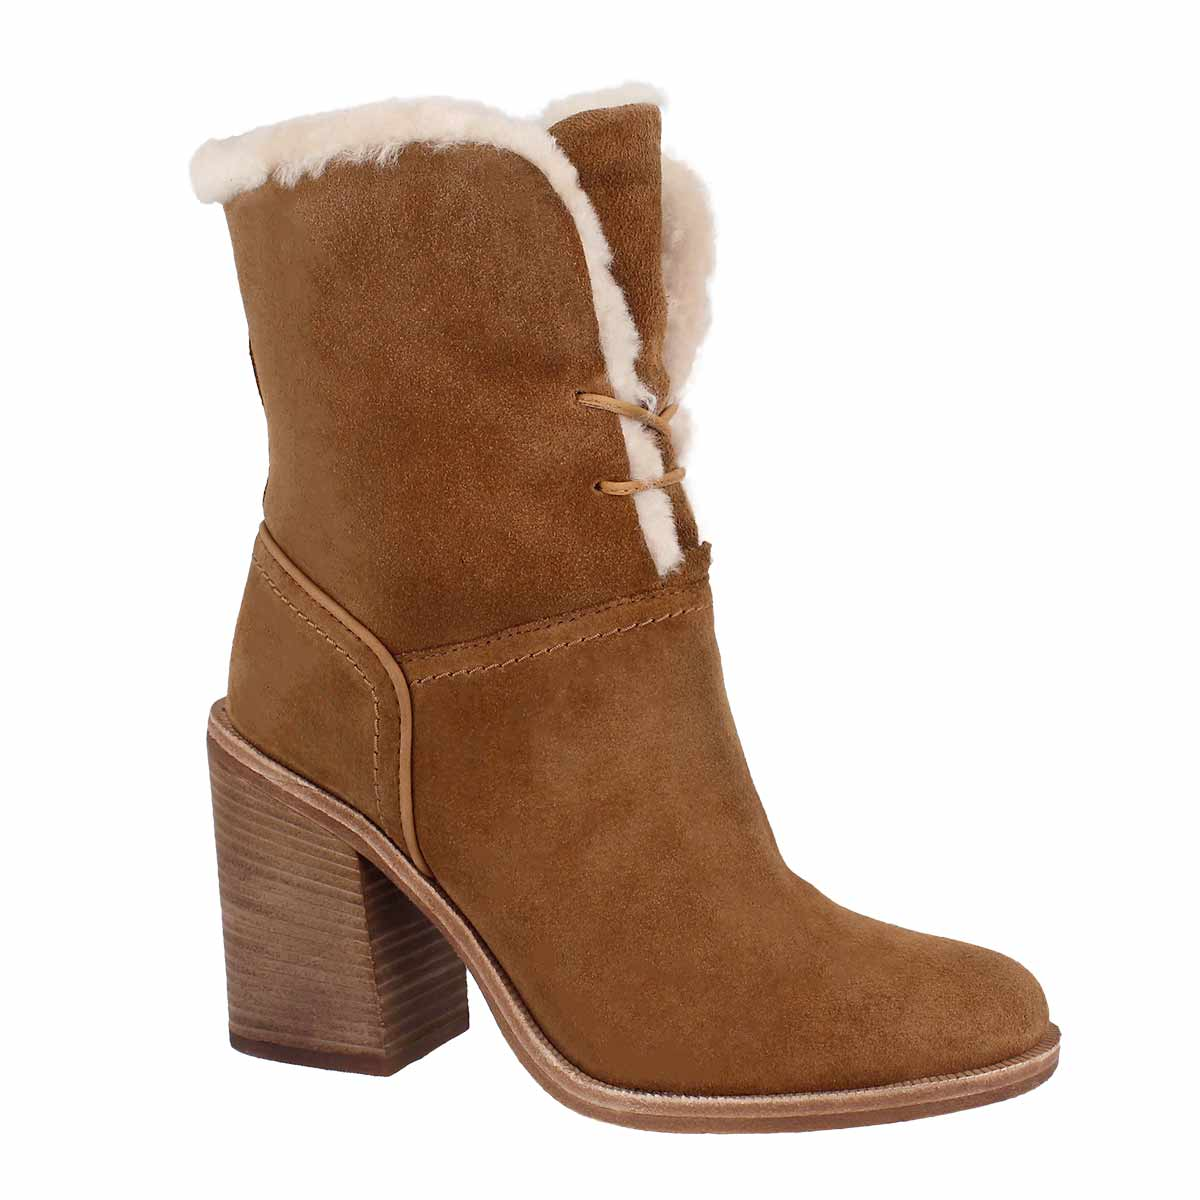 Women's Jerene Chestnut Casual Mid Calf Boots by Ugg Australia